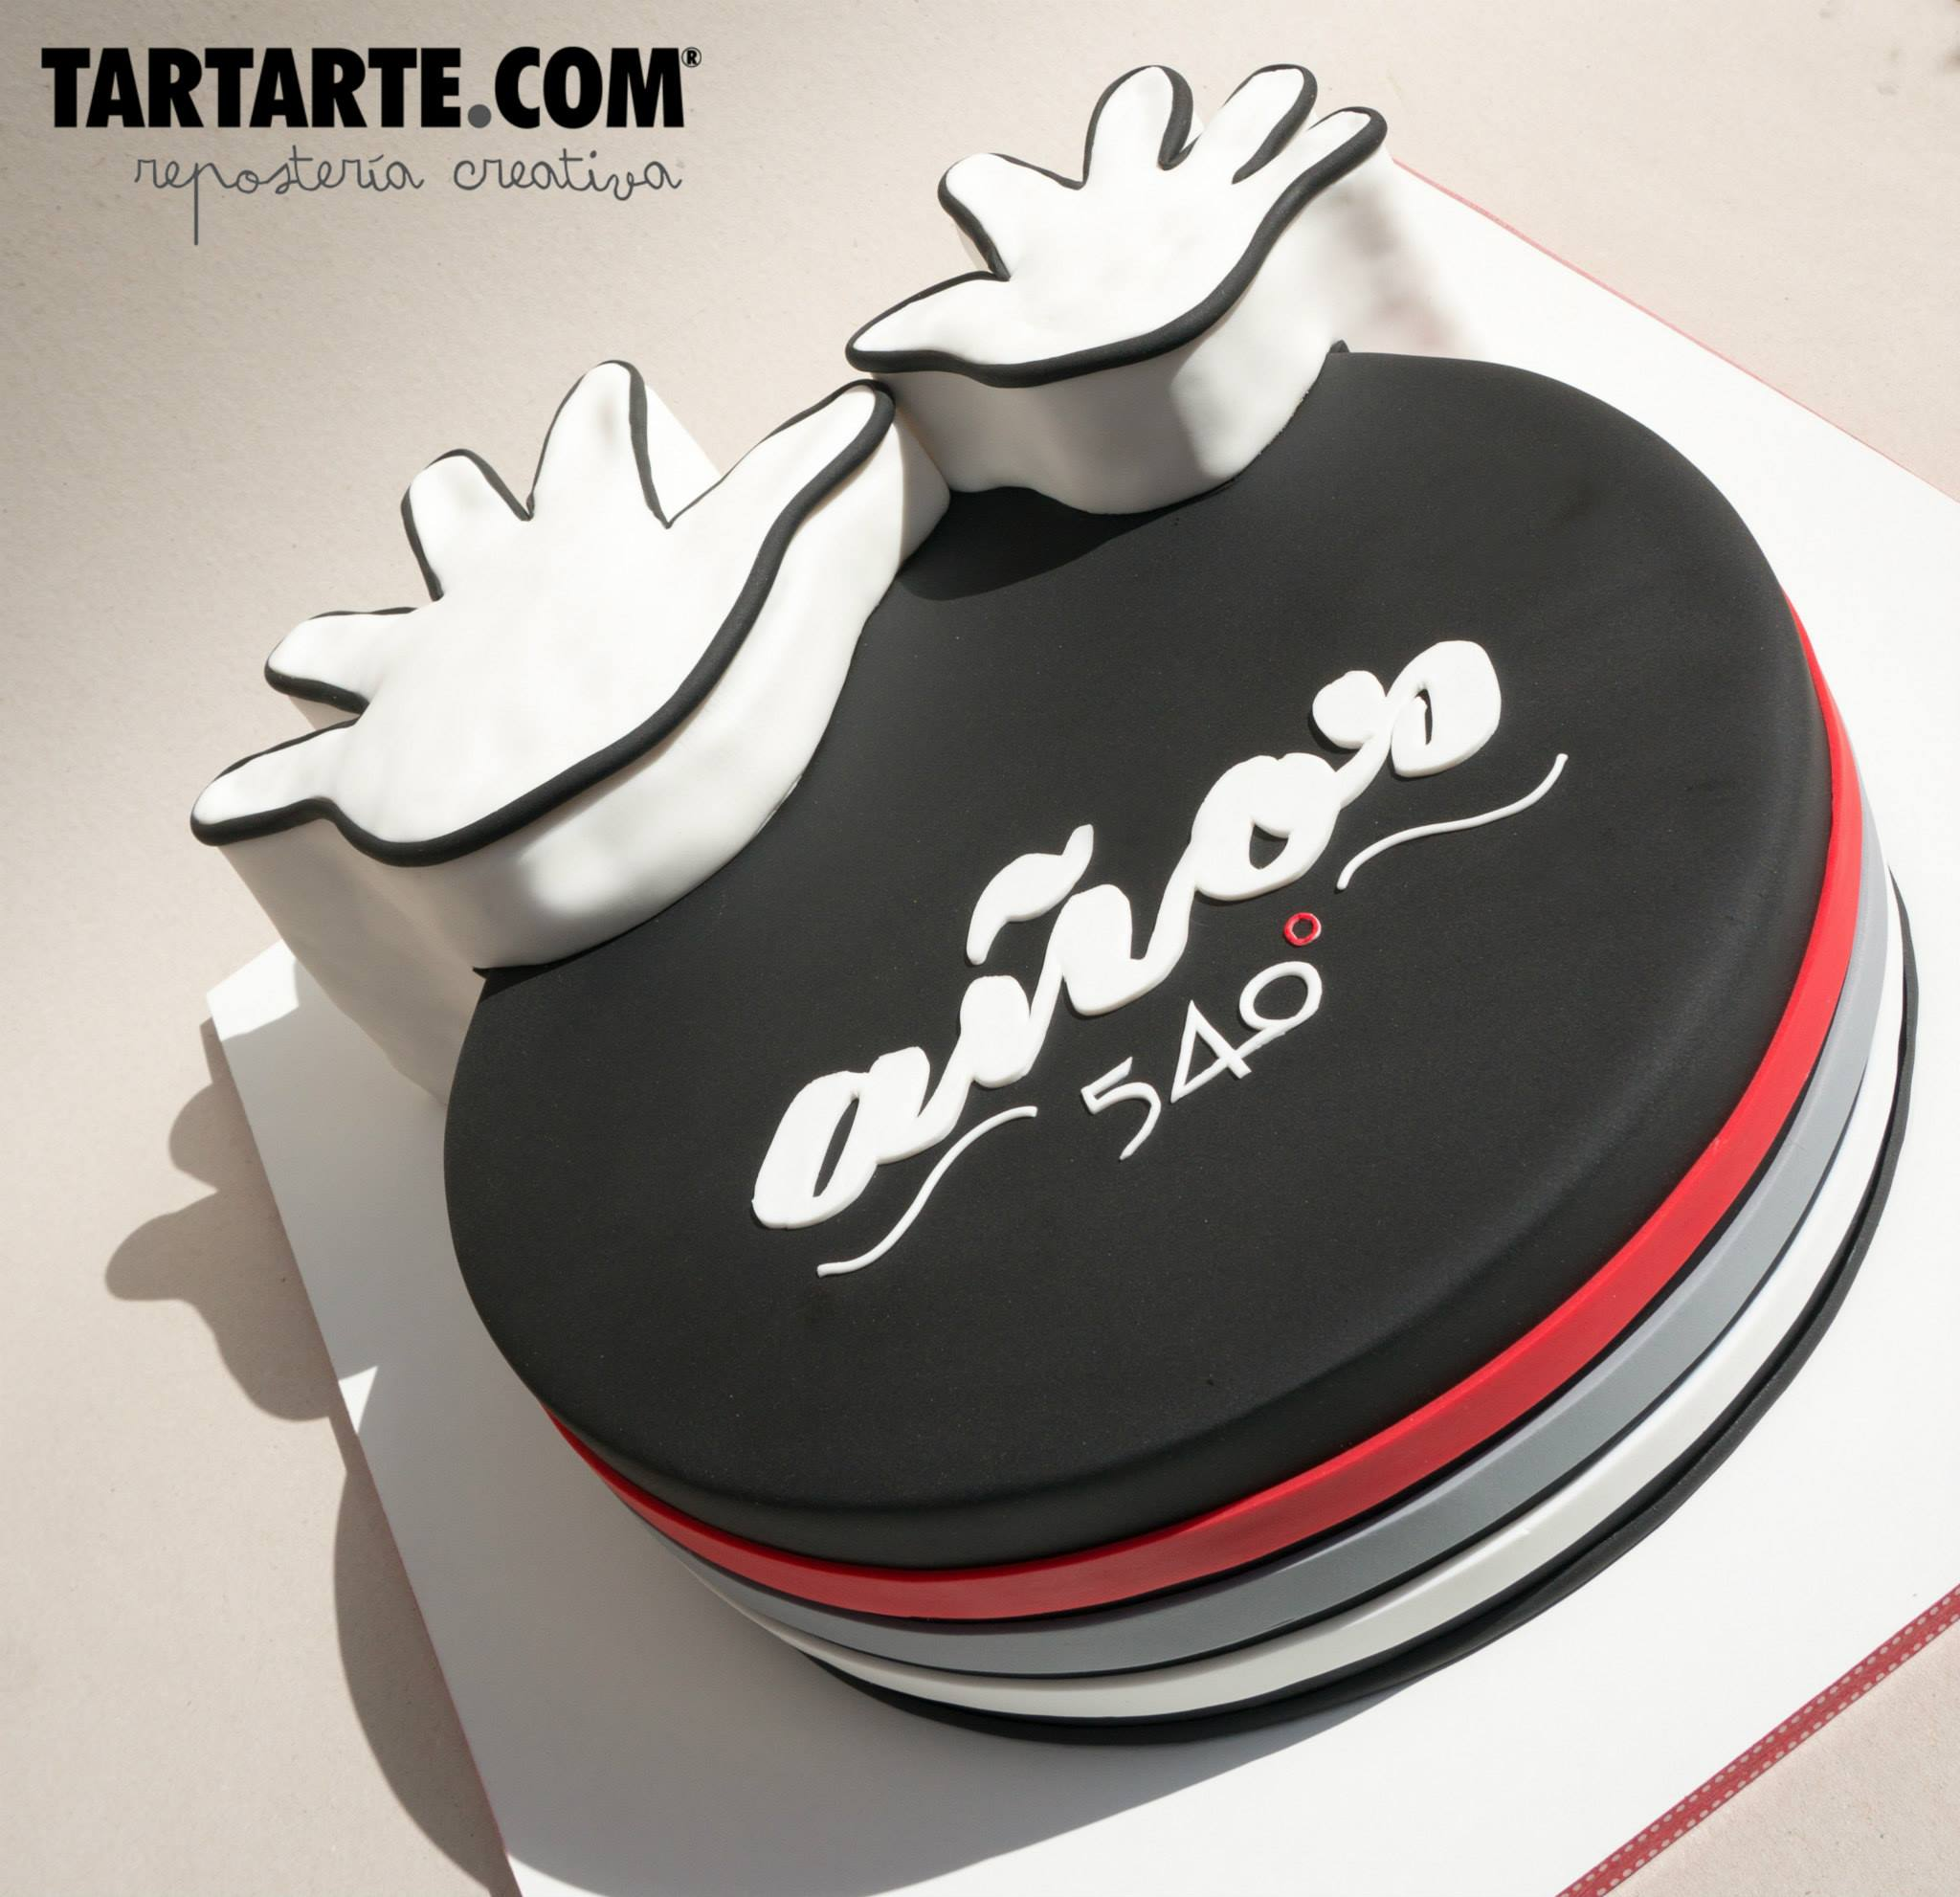 tartas corporativas madrid